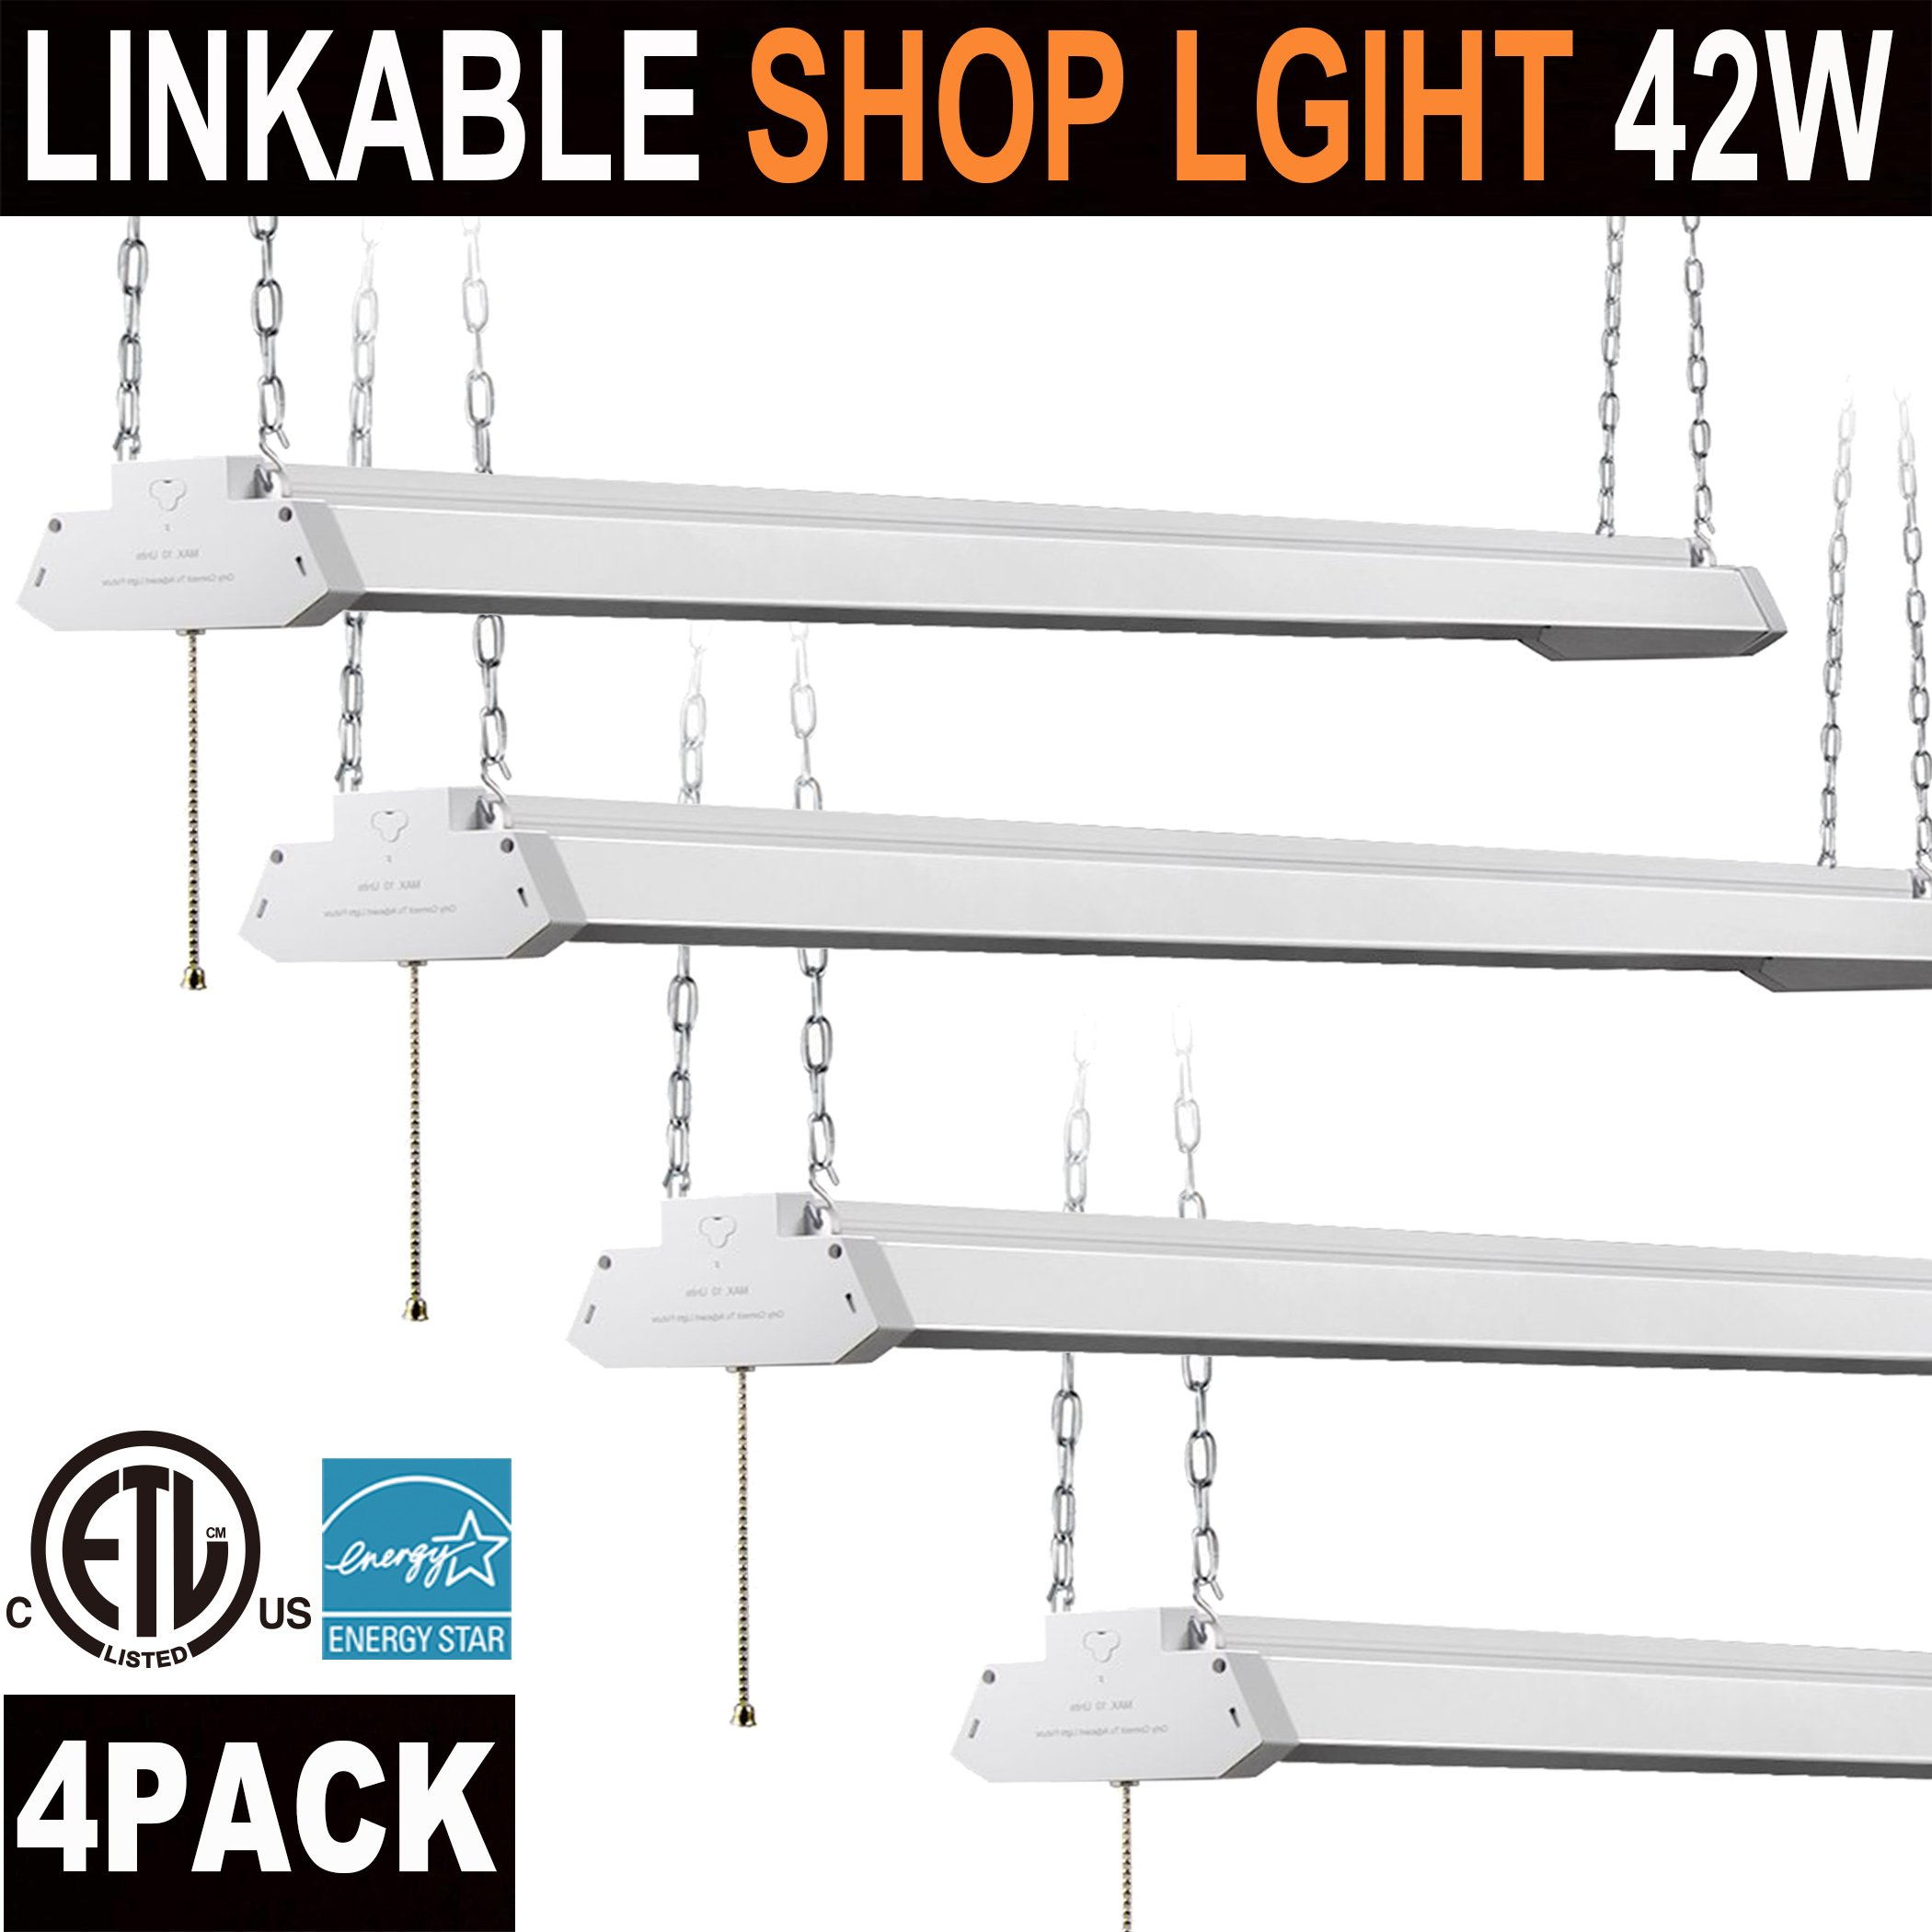 Utility Linkable LED Shop light,4FT(4pk.) , Aluminum Housing, 42W 4500LM 5000K Daylight White, With Pull Chain (ON/OFF)Linear Worklight Fixture with PlugEnergy Star cETLus Listed 4PACK 5000K Daylight by OOOLED